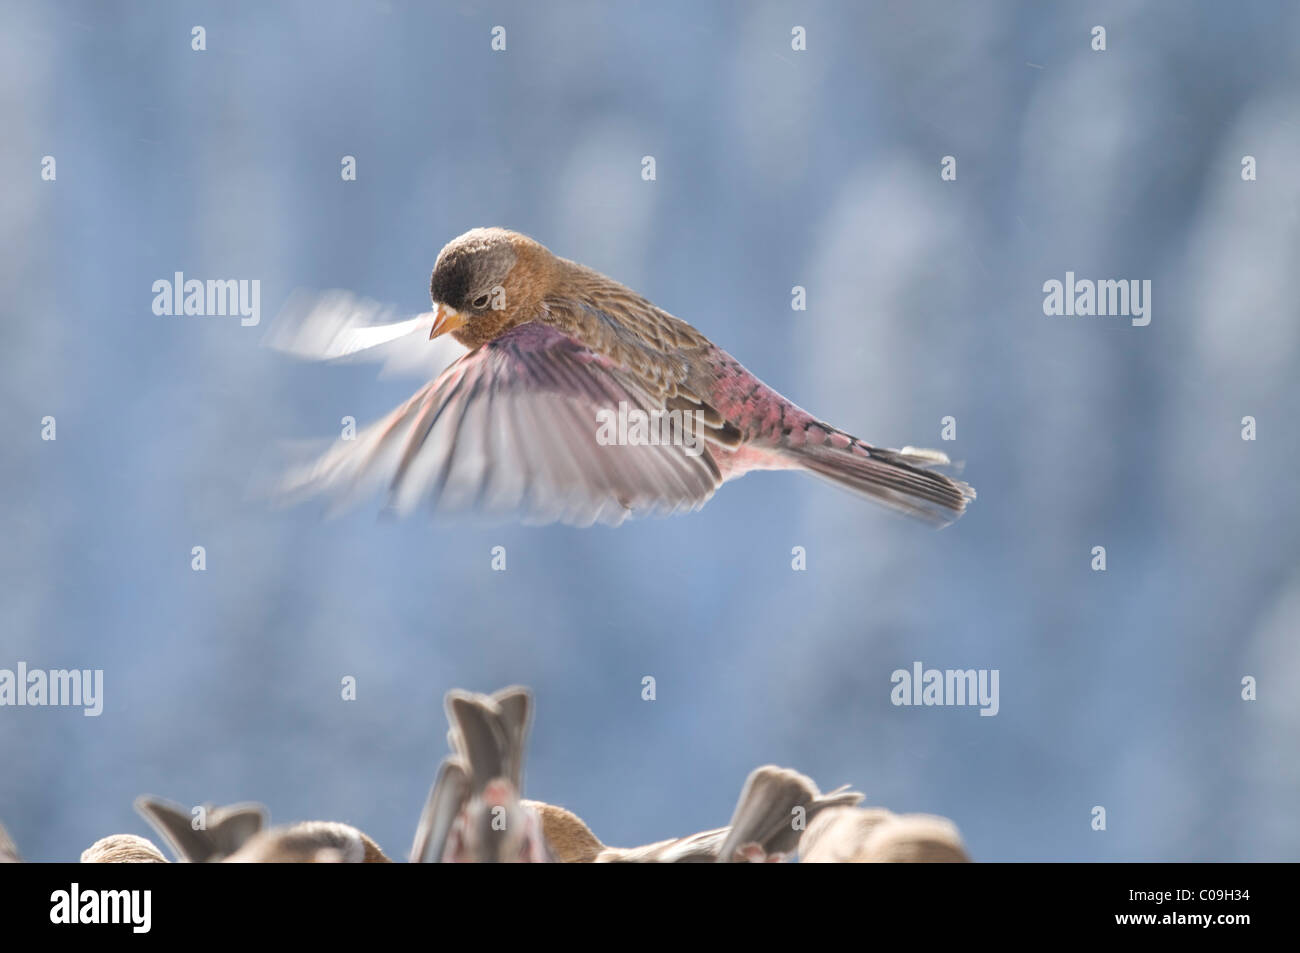 Looking for a Place to Land:  Brown-capped Rosy Finch (Leucosticte australis) in Flight - Stock Image